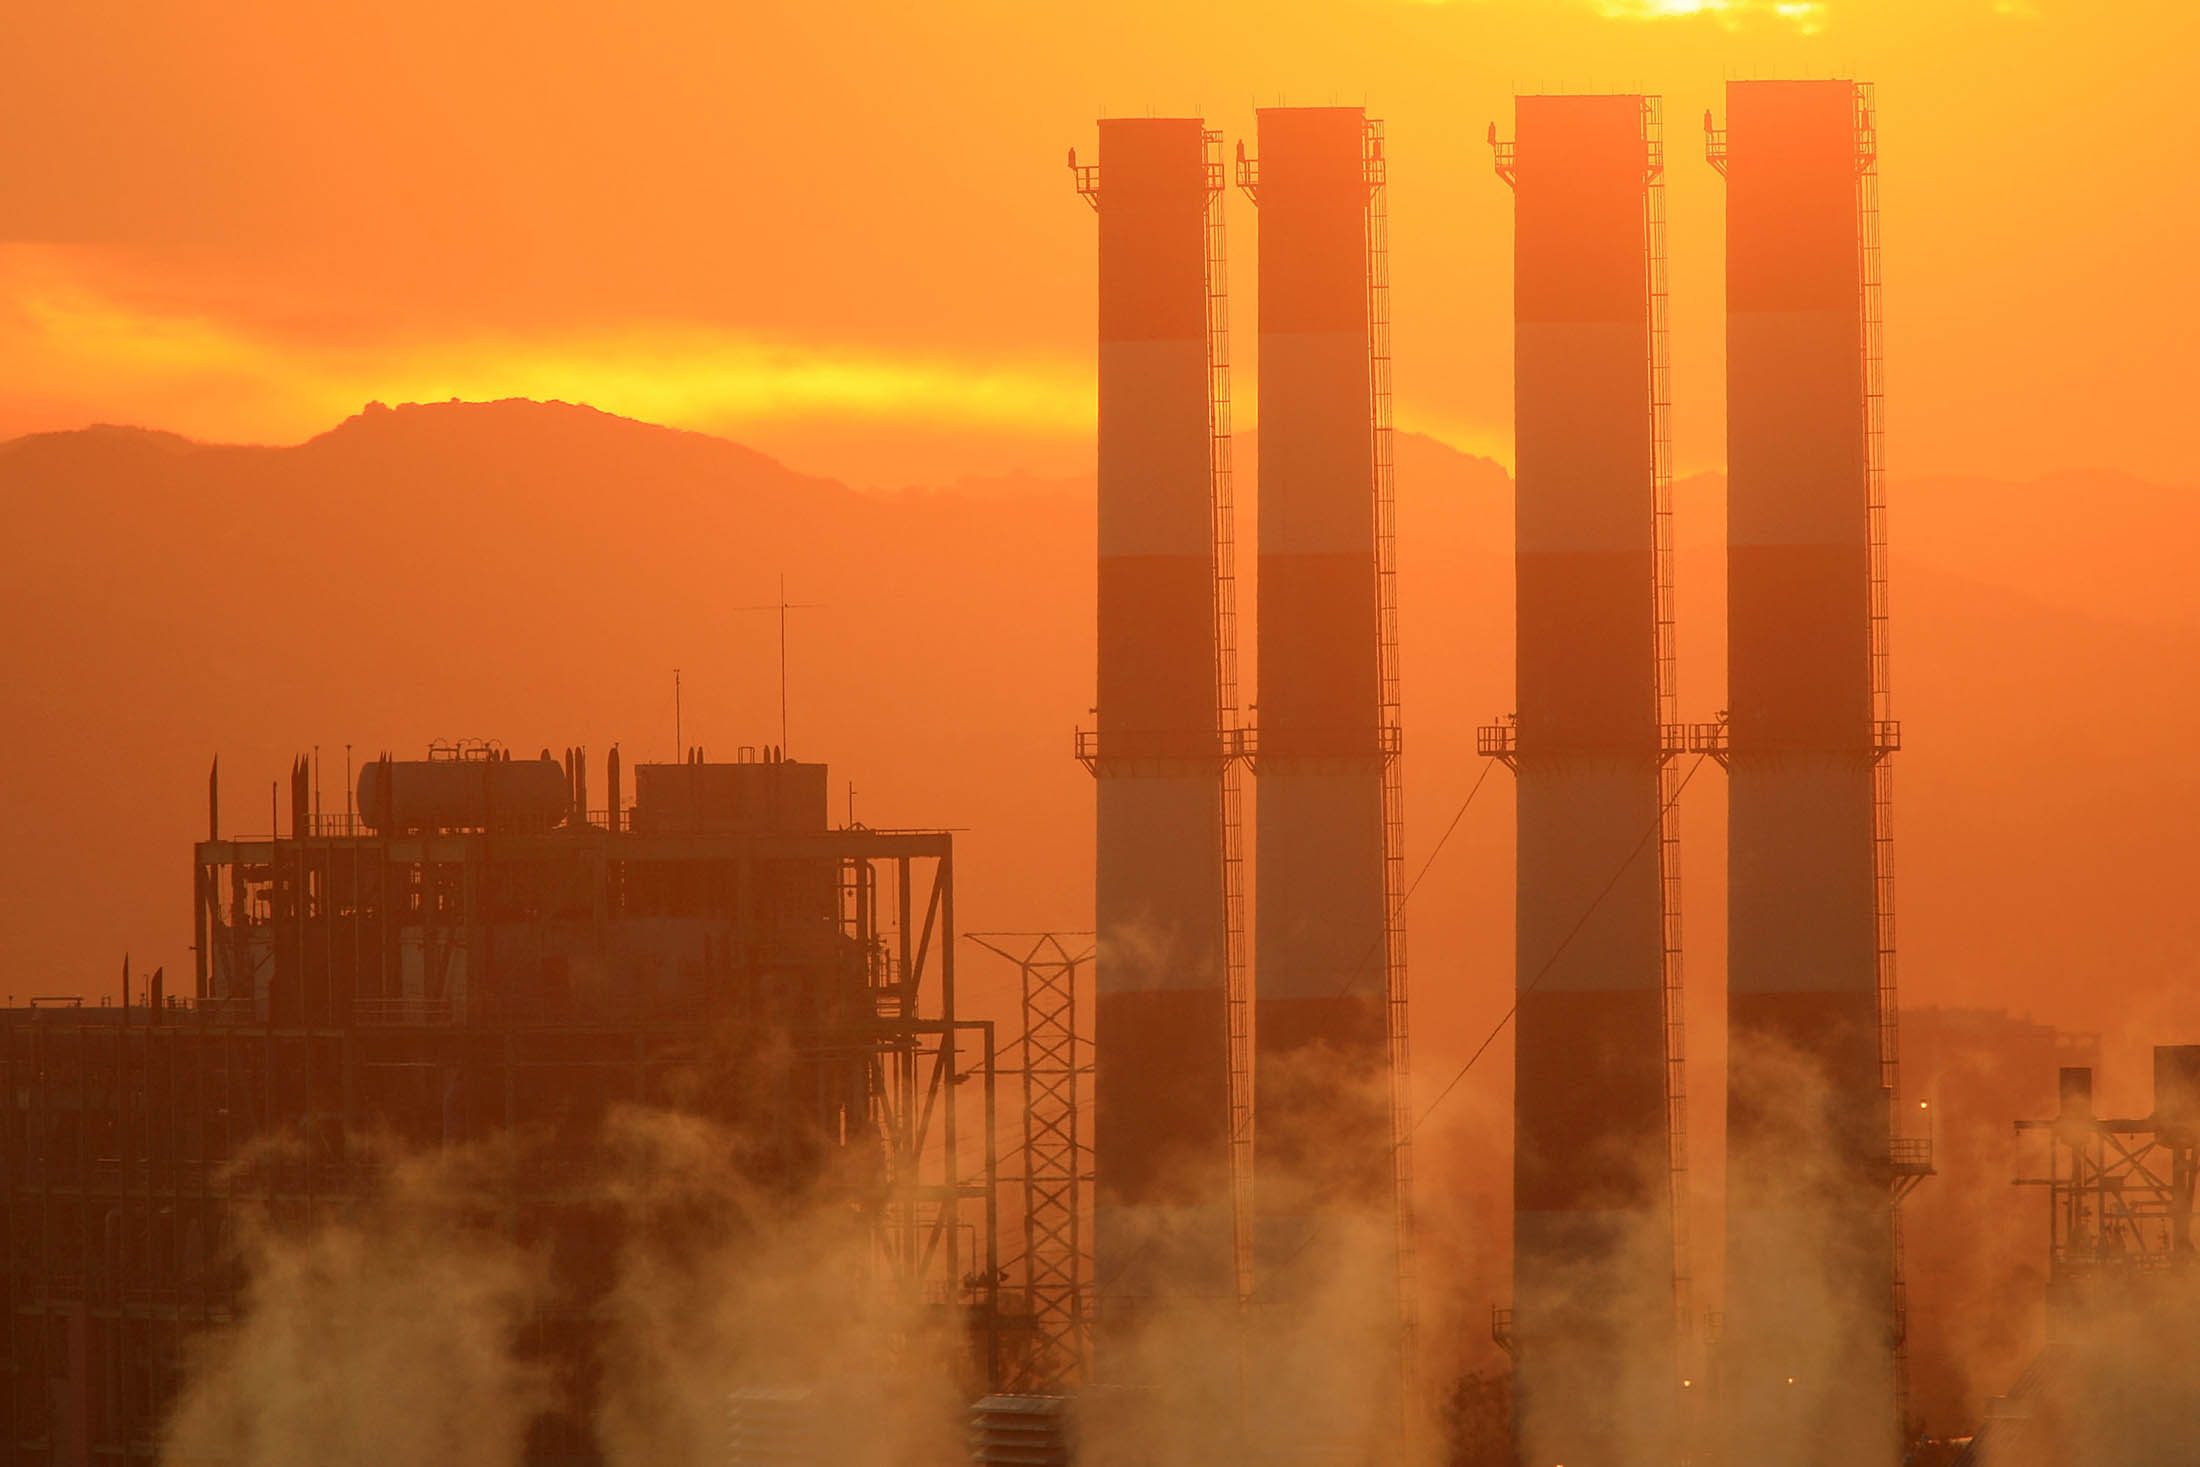 A power plant in Sun Valley, California.